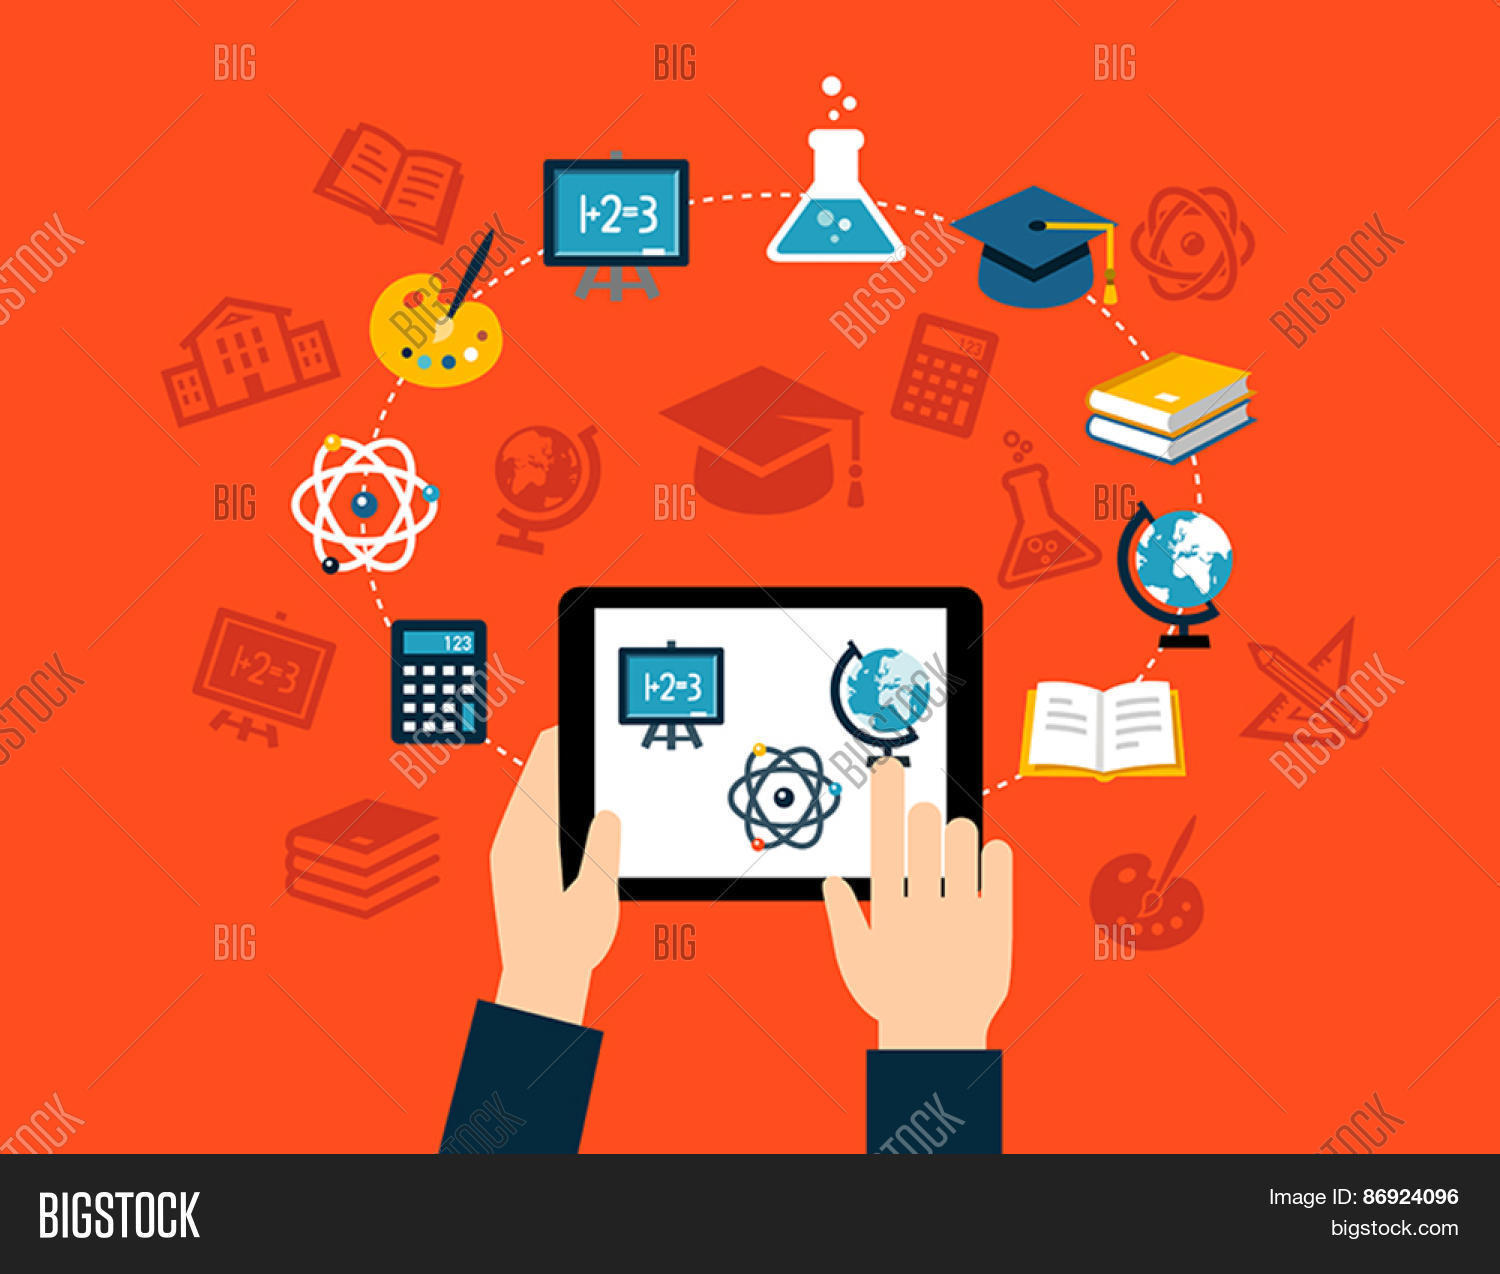 Background With Flat Design Icons Representing Education Studying E Learning Or Online Training